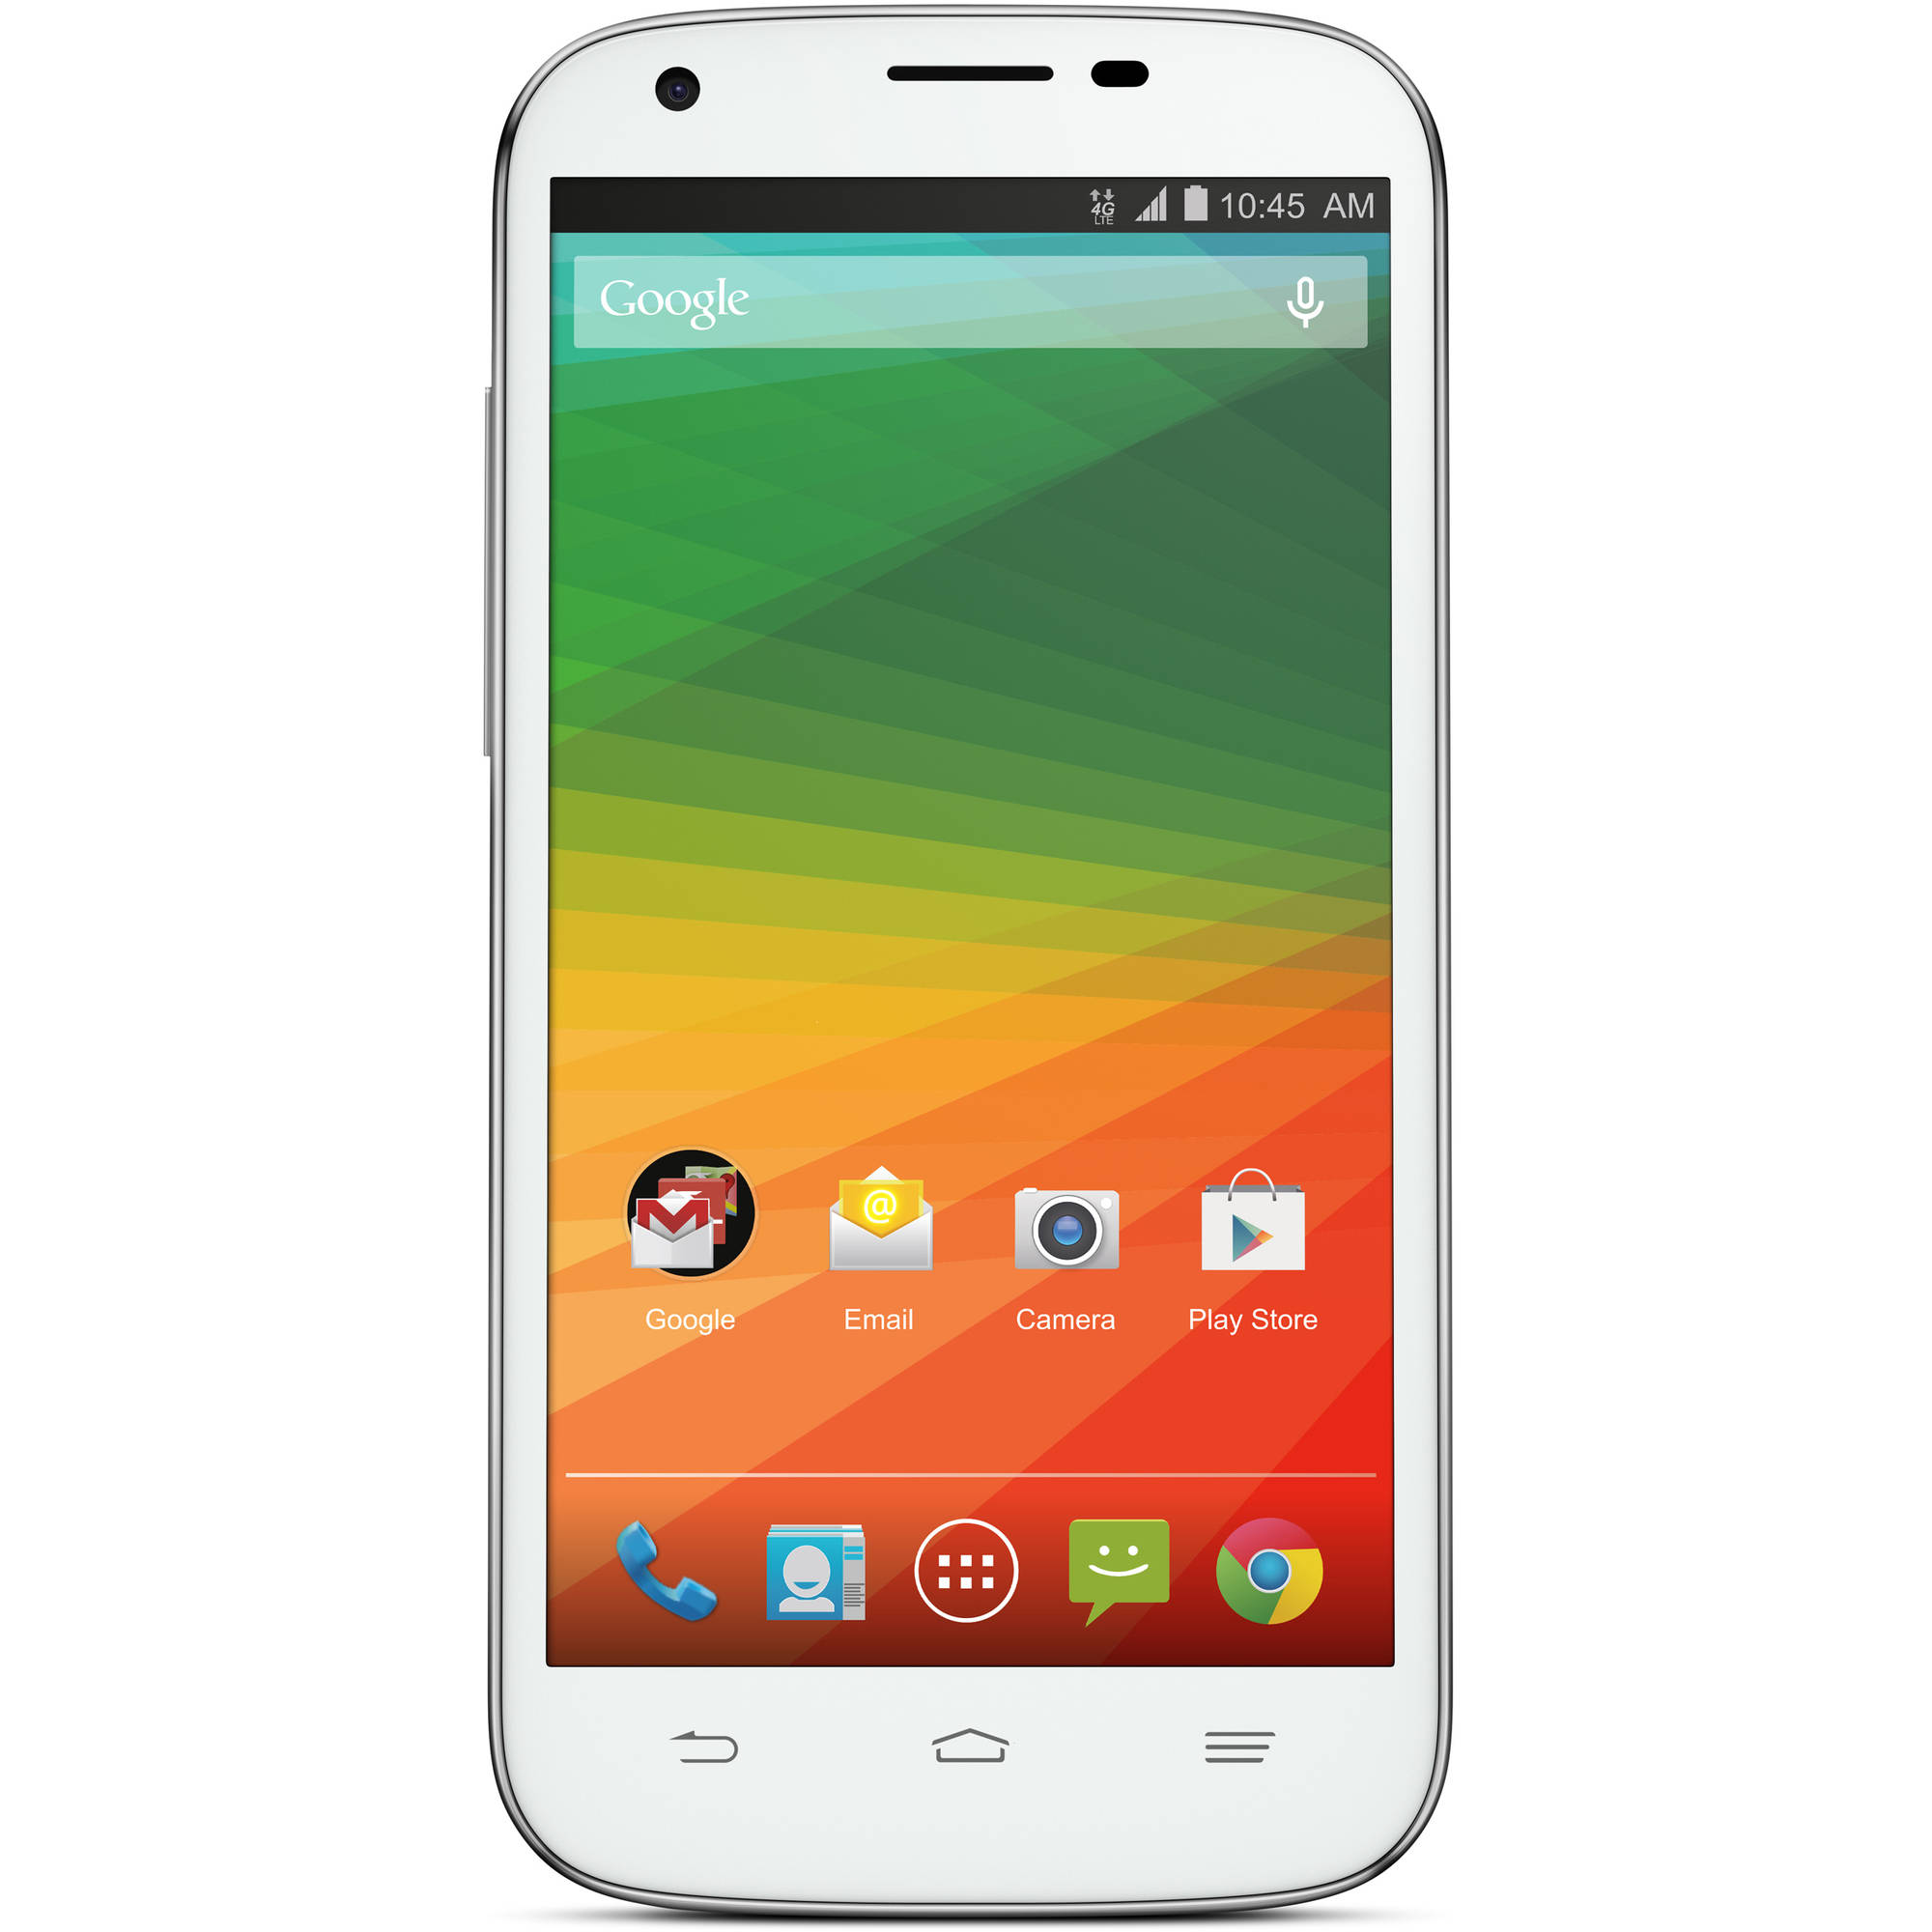 zte legacy n817 qlink from Sony